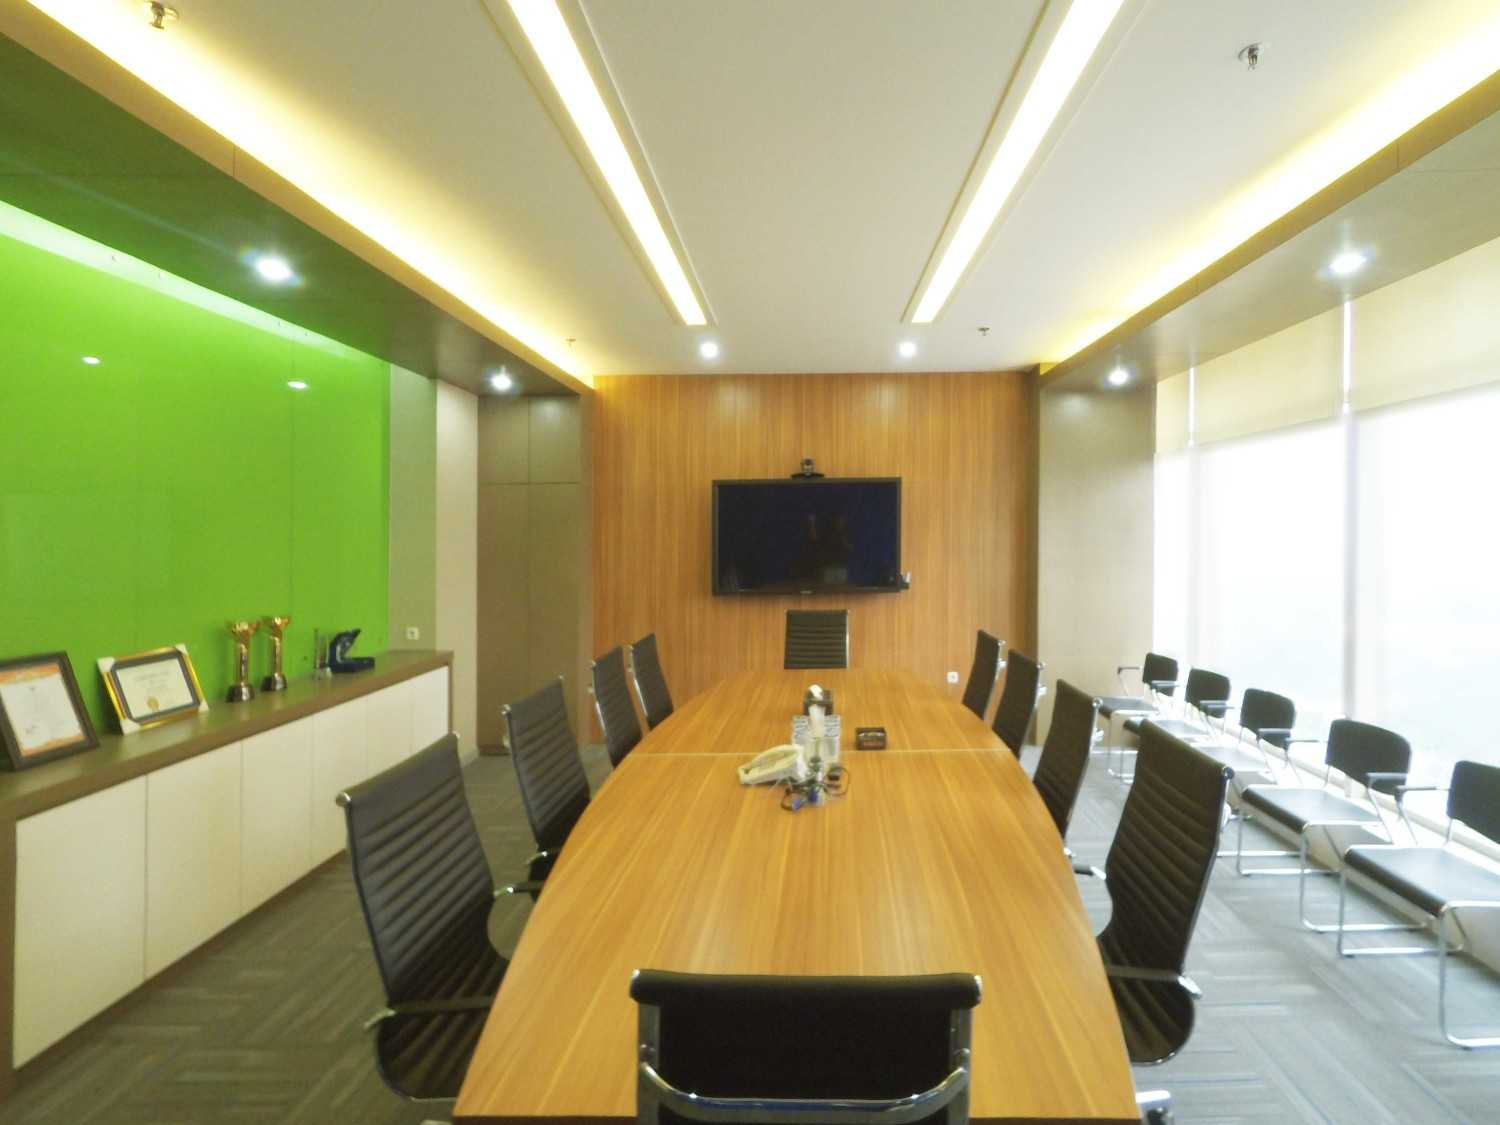 Arkadia Works Sekar Bumi Office Renovation Plaza Asia 21St Floor Plaza Asia 21St Floor Meeting Room  14073